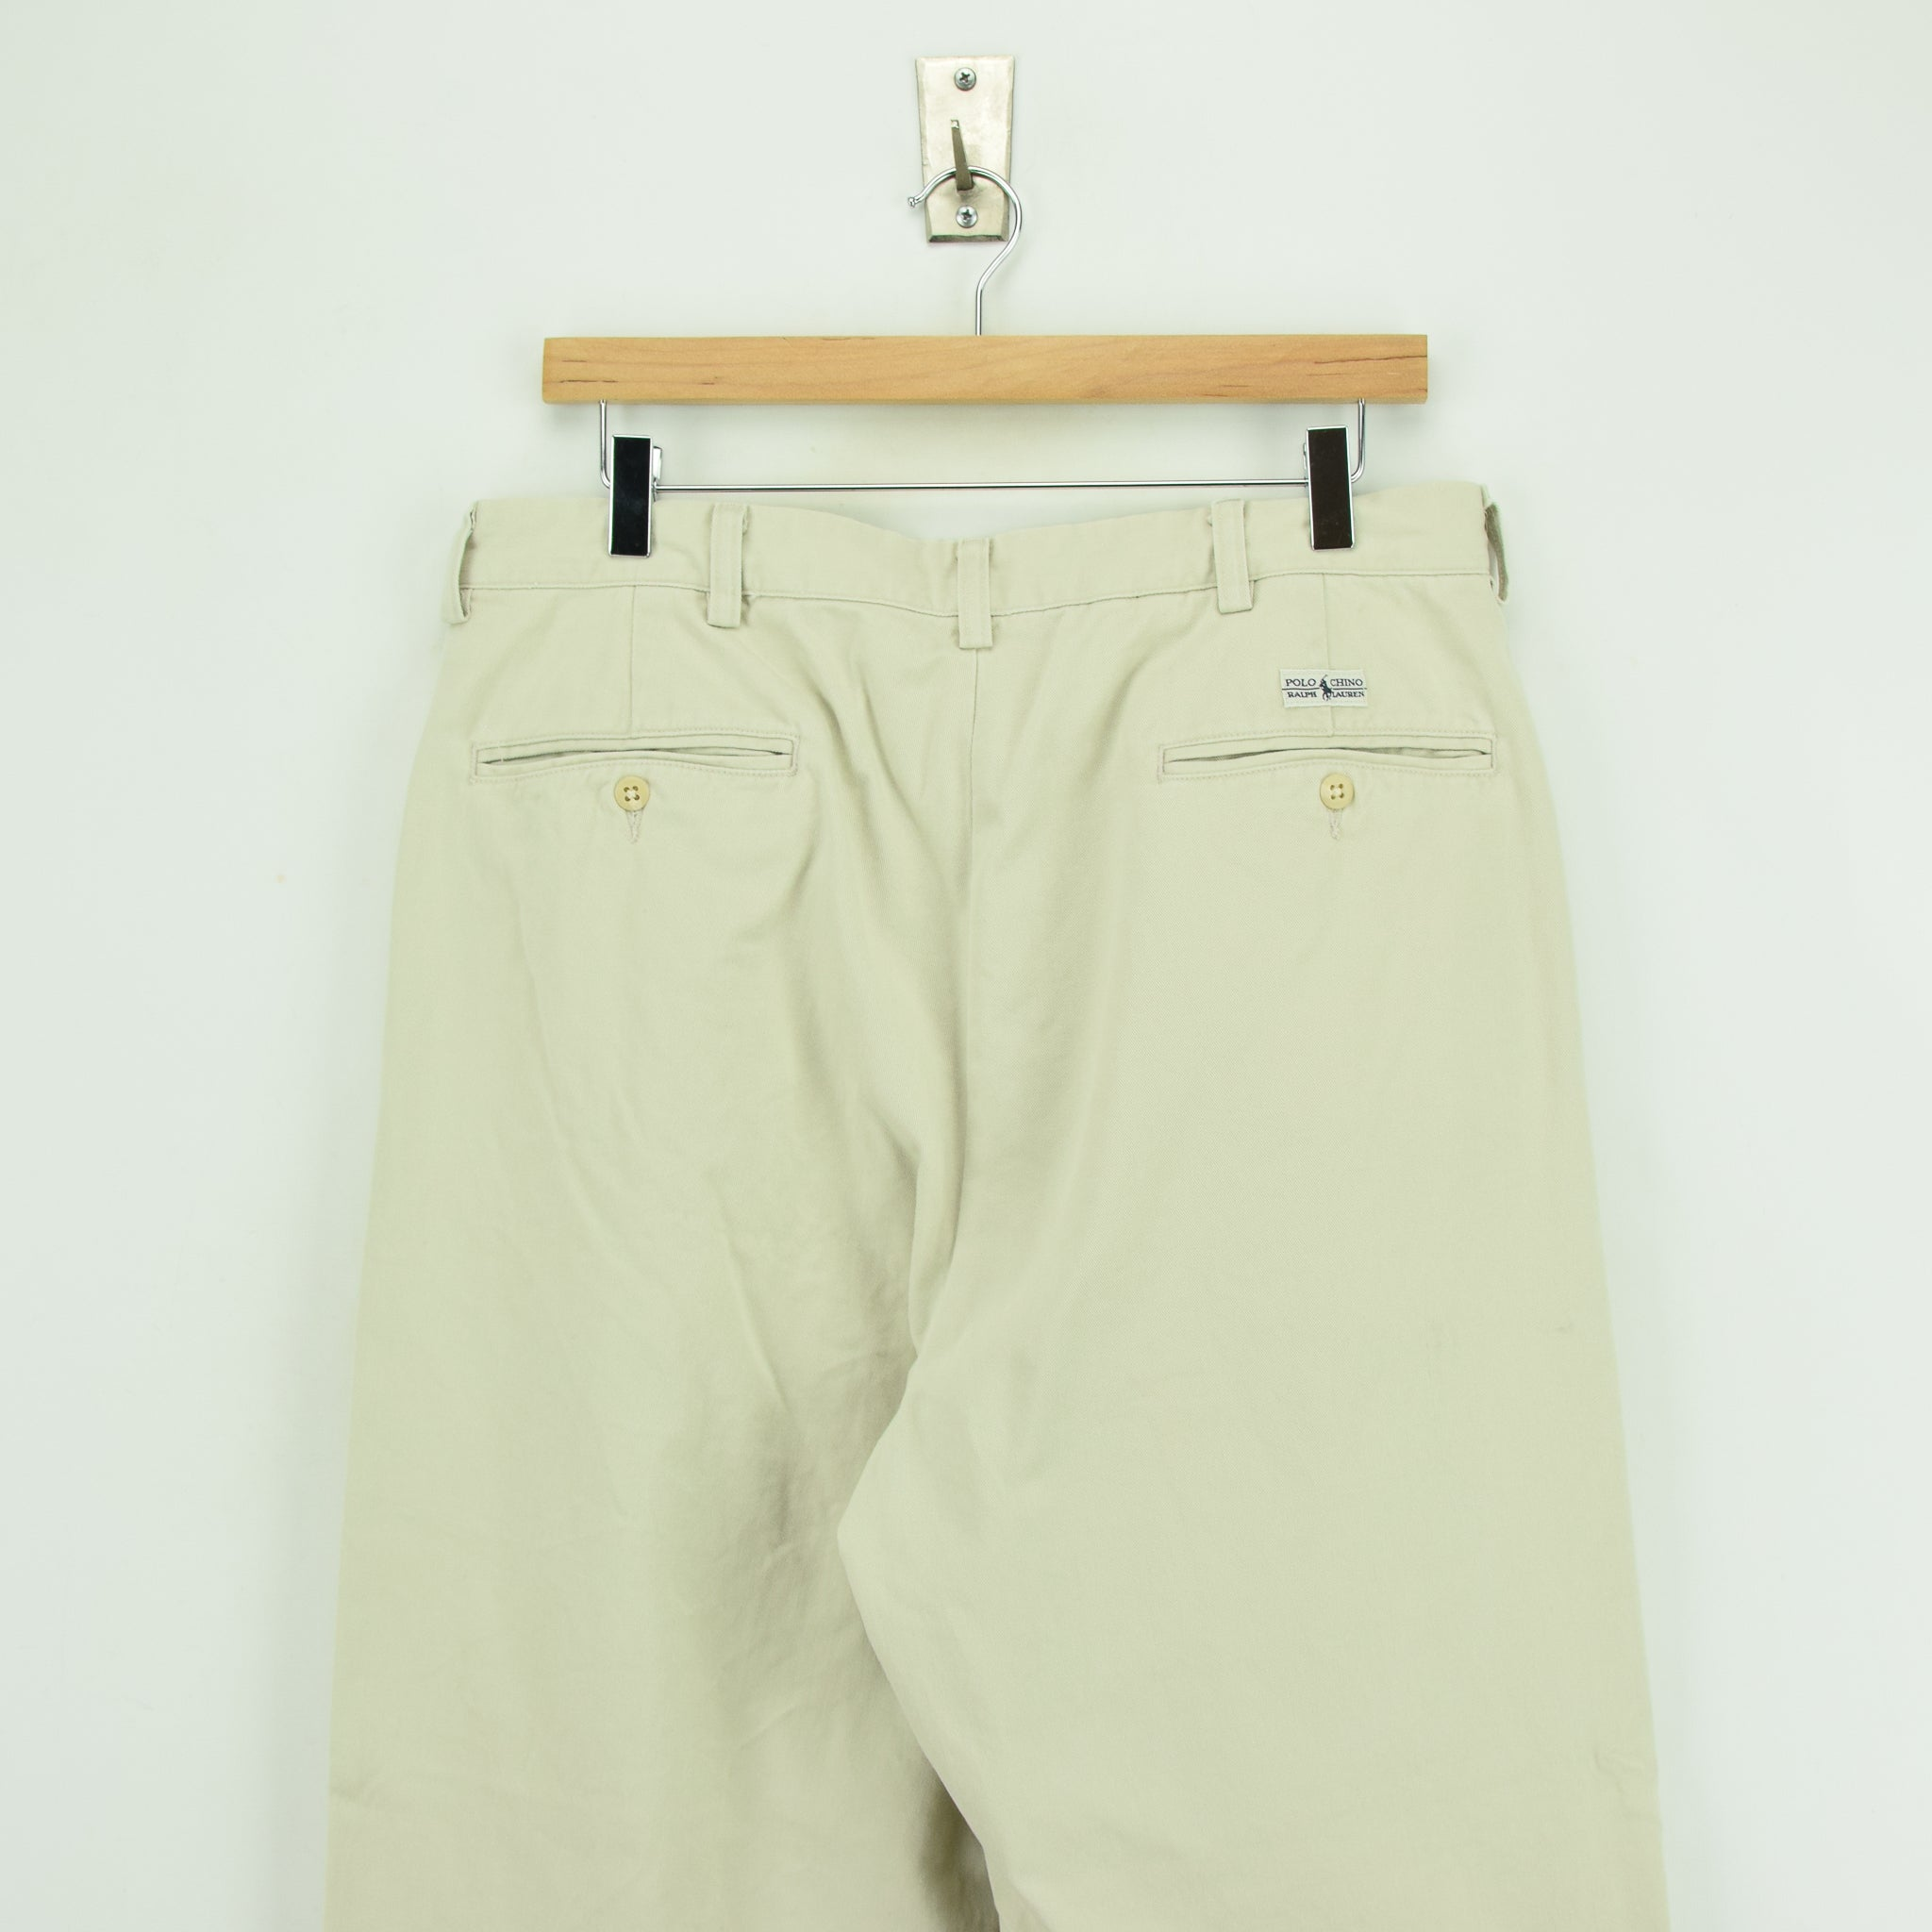 Vintage Ralph Lauren Polo Andrew Pant Chinos Pleated Front Trousers 32 W 28 L back waist